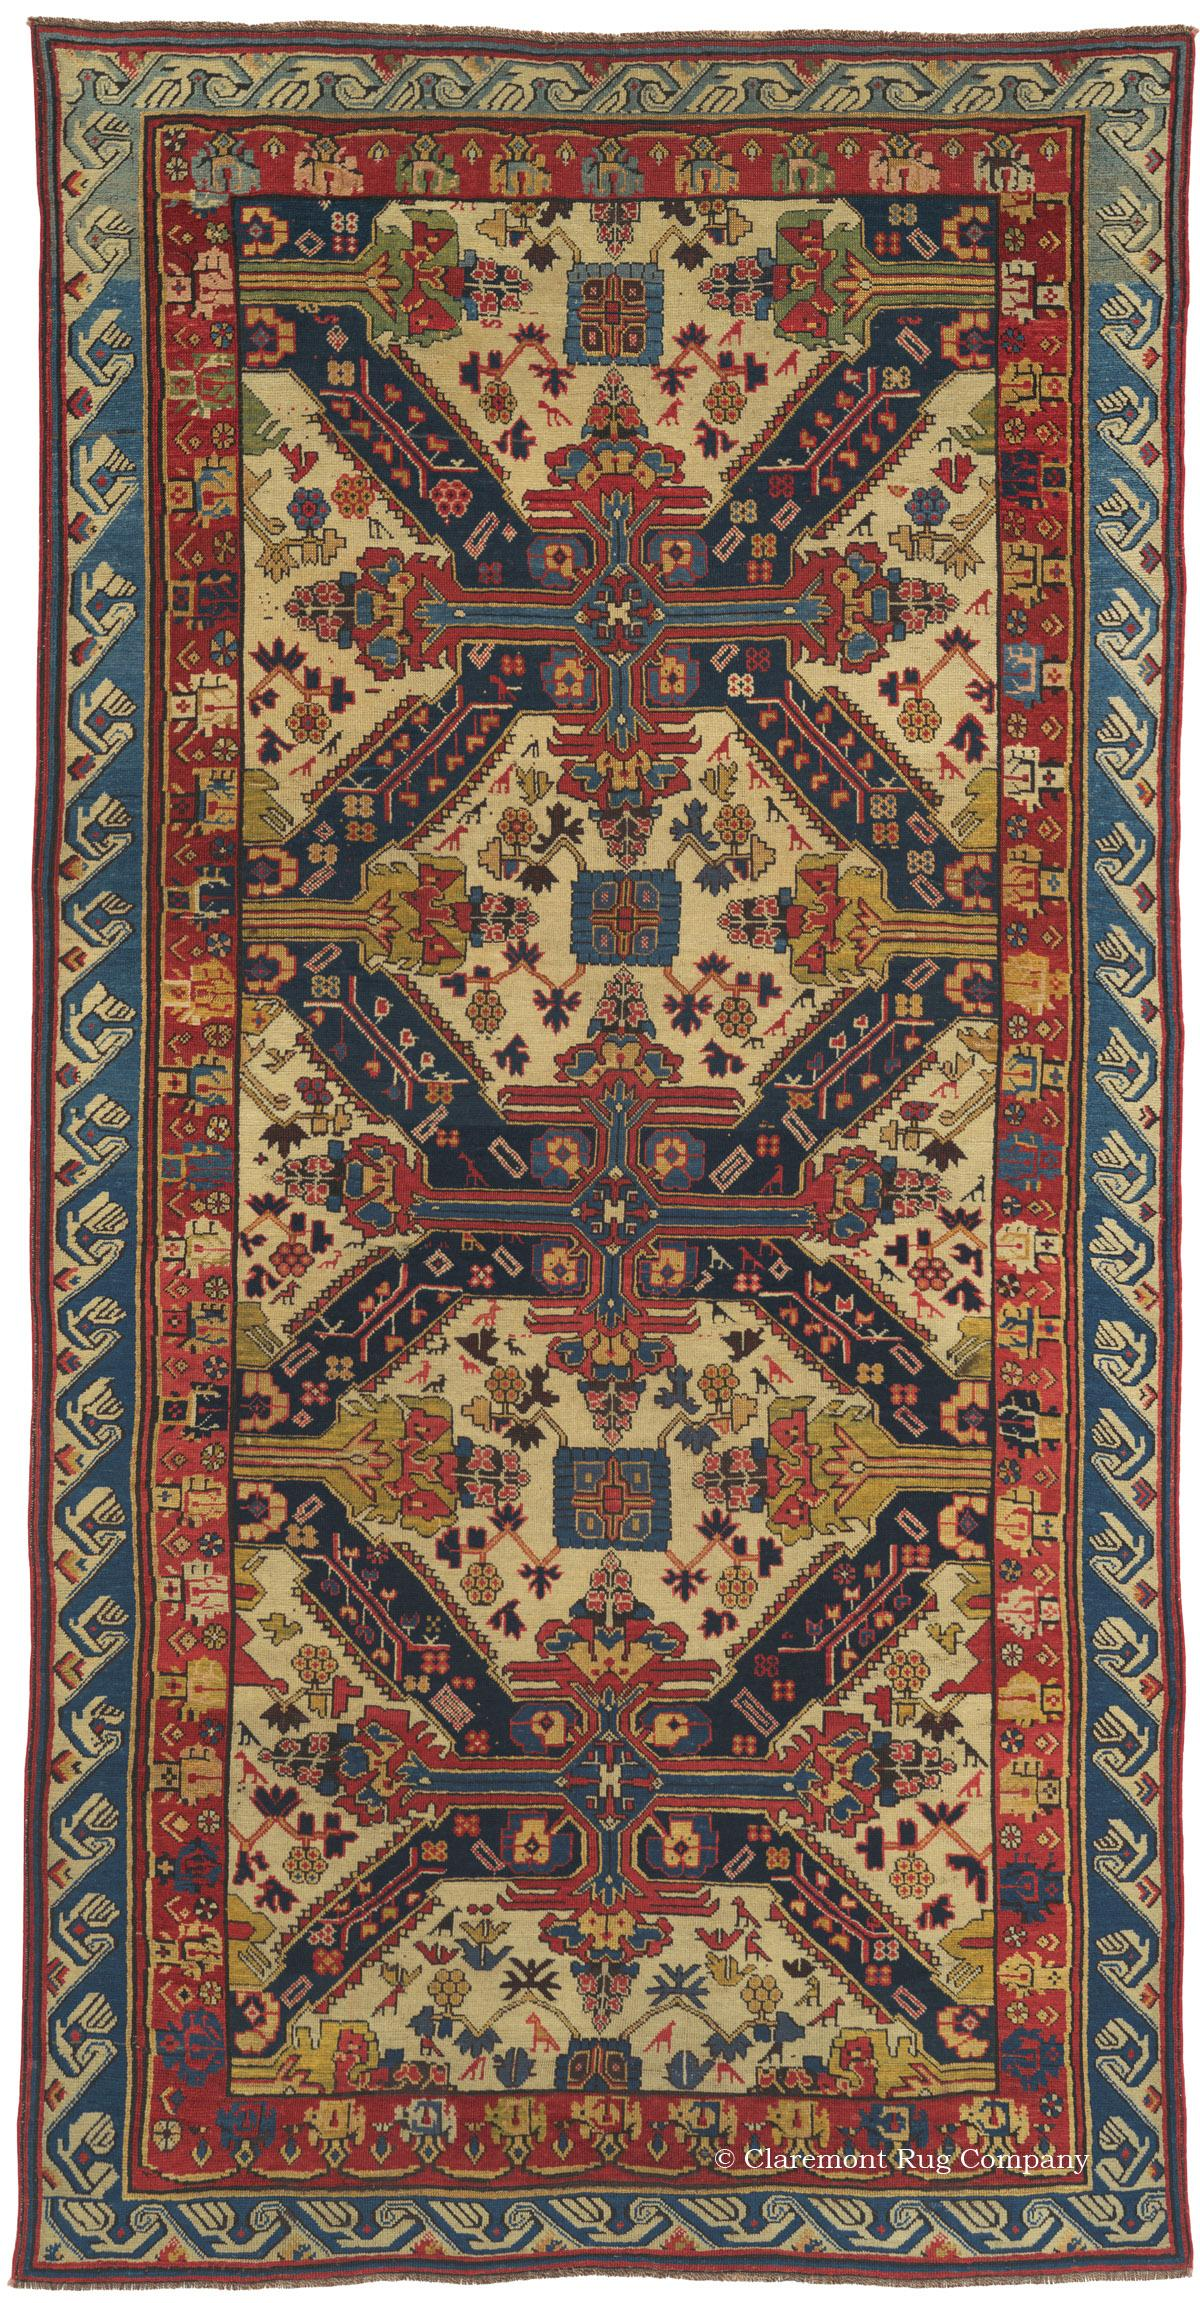 Seichur Kuba Antique Rug Circa 1825